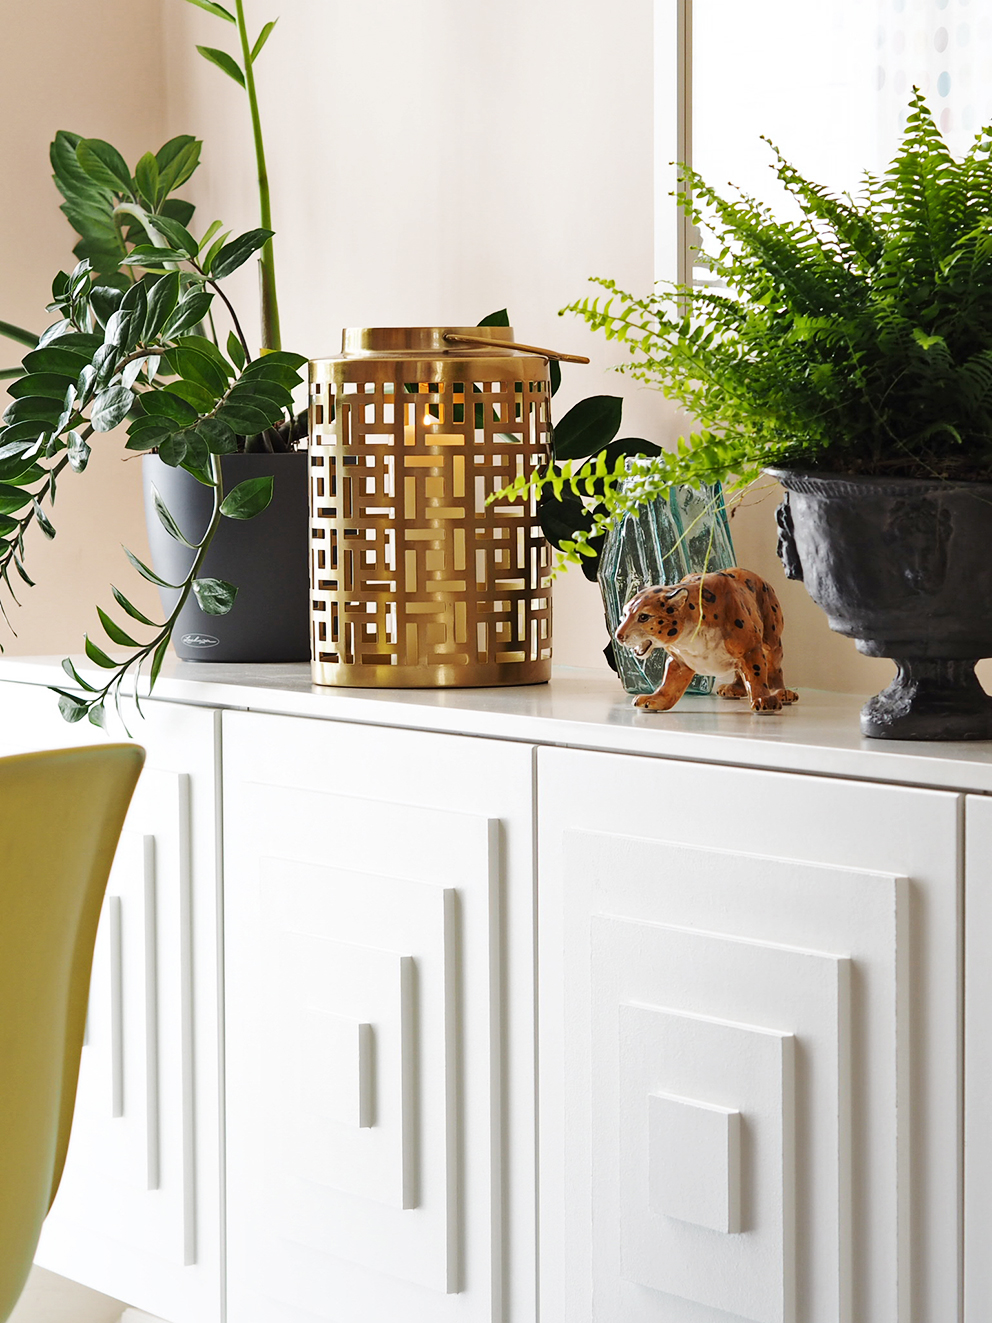 My Summer Dining Room - French For Pineapple Blog - Side board with stepped panelled doors, with brass deco style lantern and plants